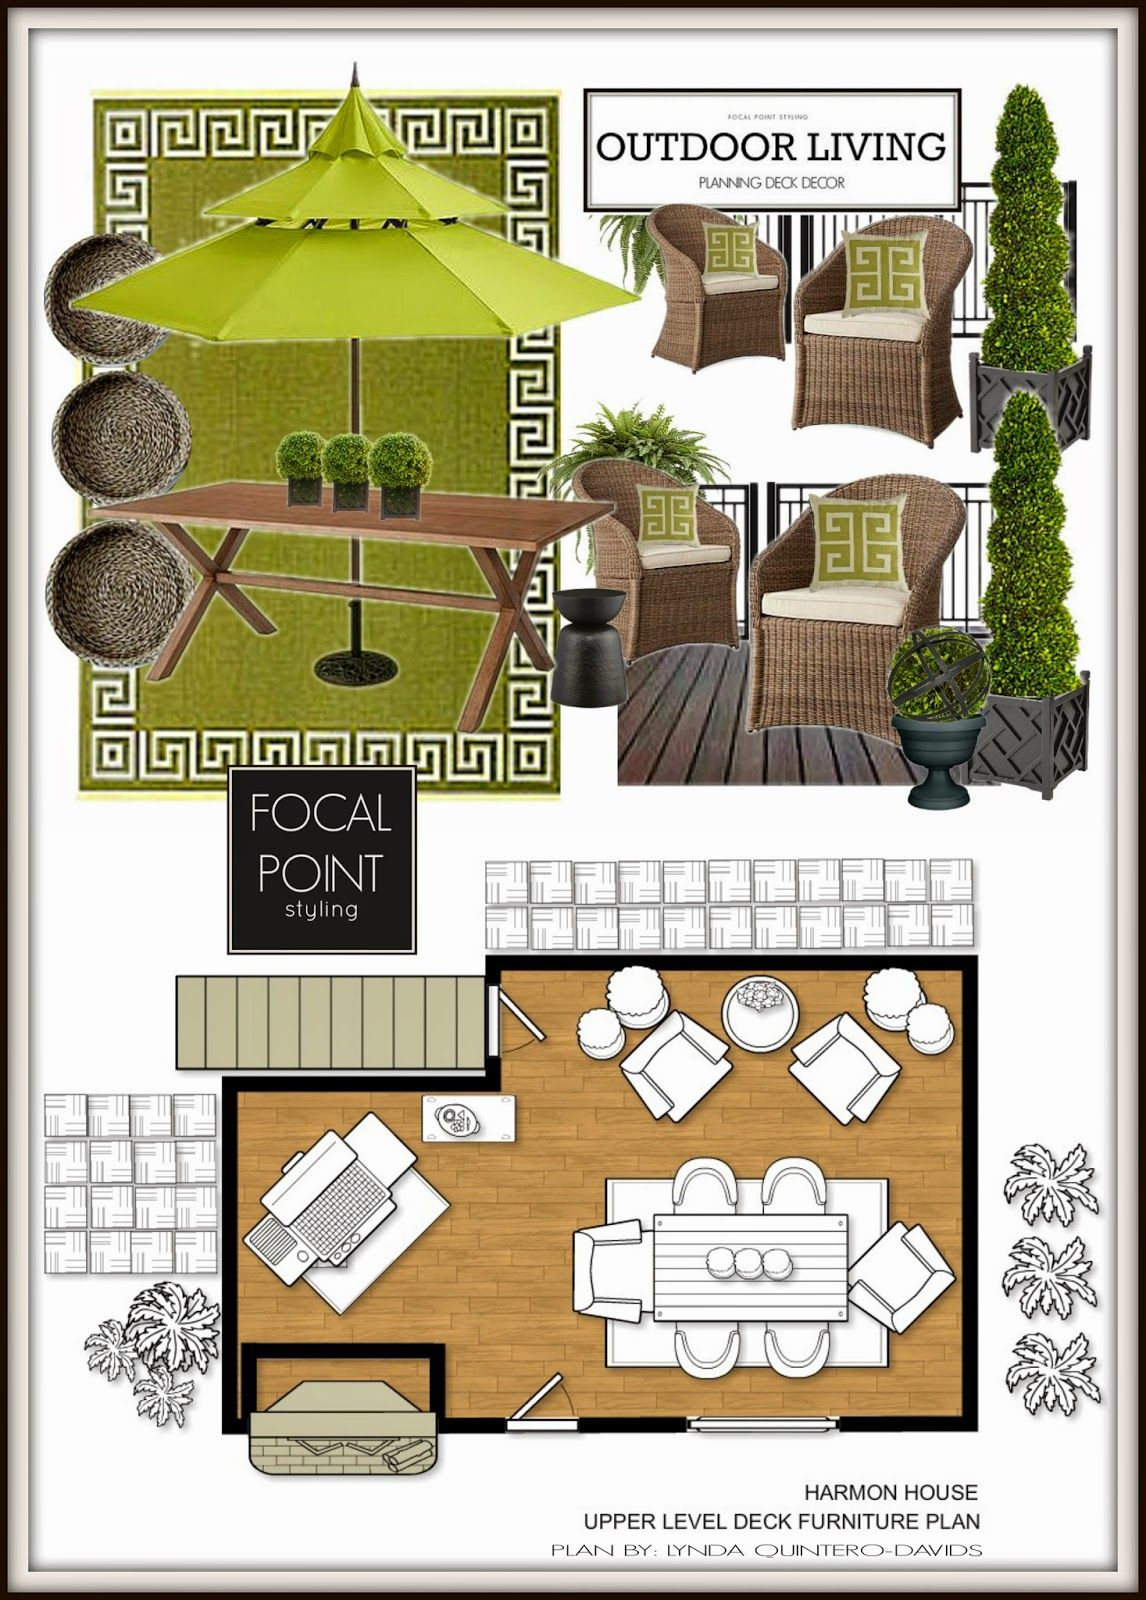 Outdoor Living Deck Decor Planning For Spring Outdoor Living Deck Outdoor Living Deck Decor Deck Decorating